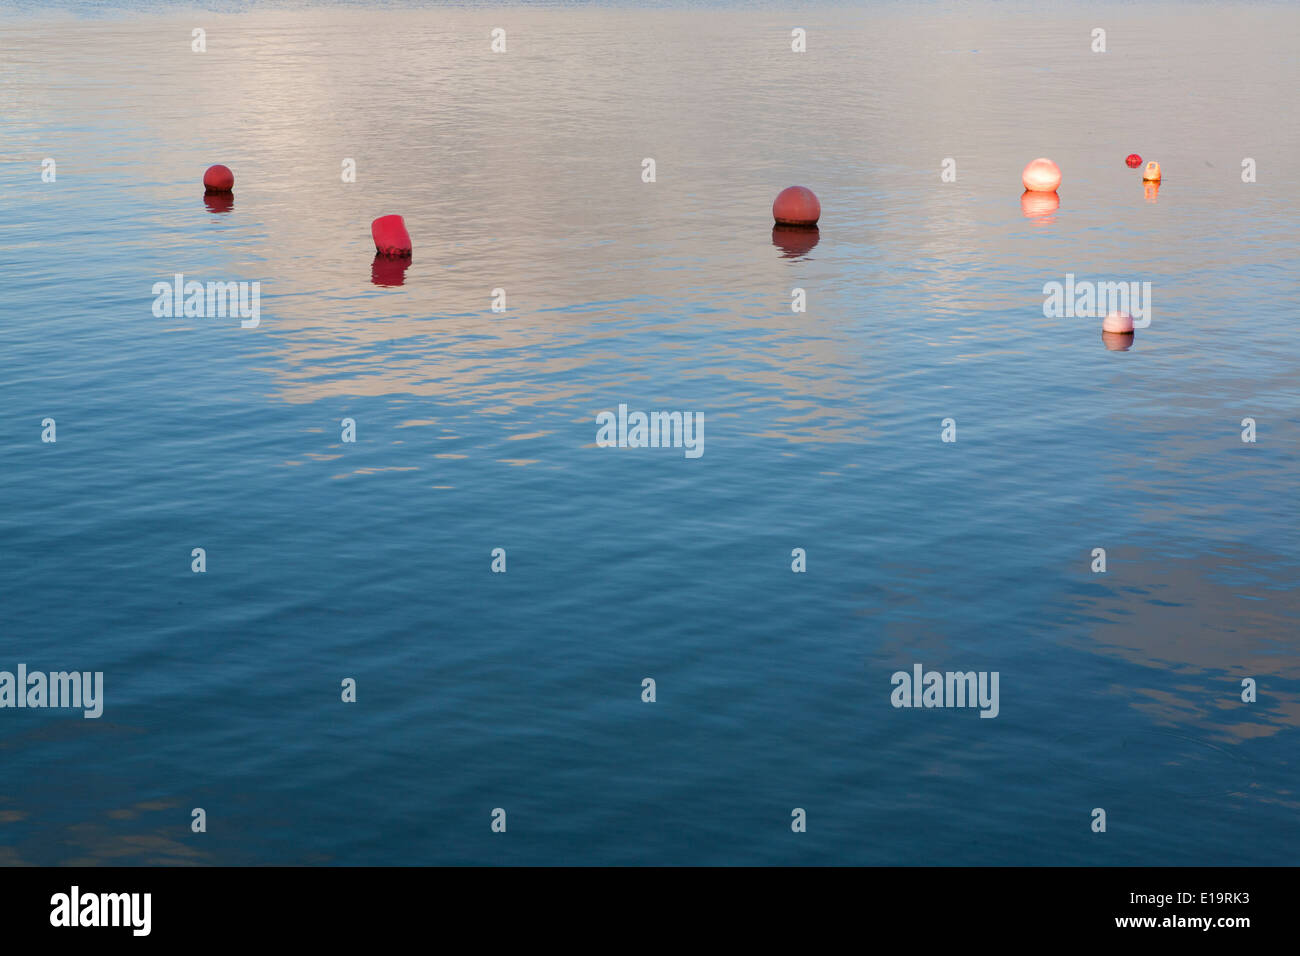 Cloudy sky reflected in the sea, bouys floating. - Stock Image